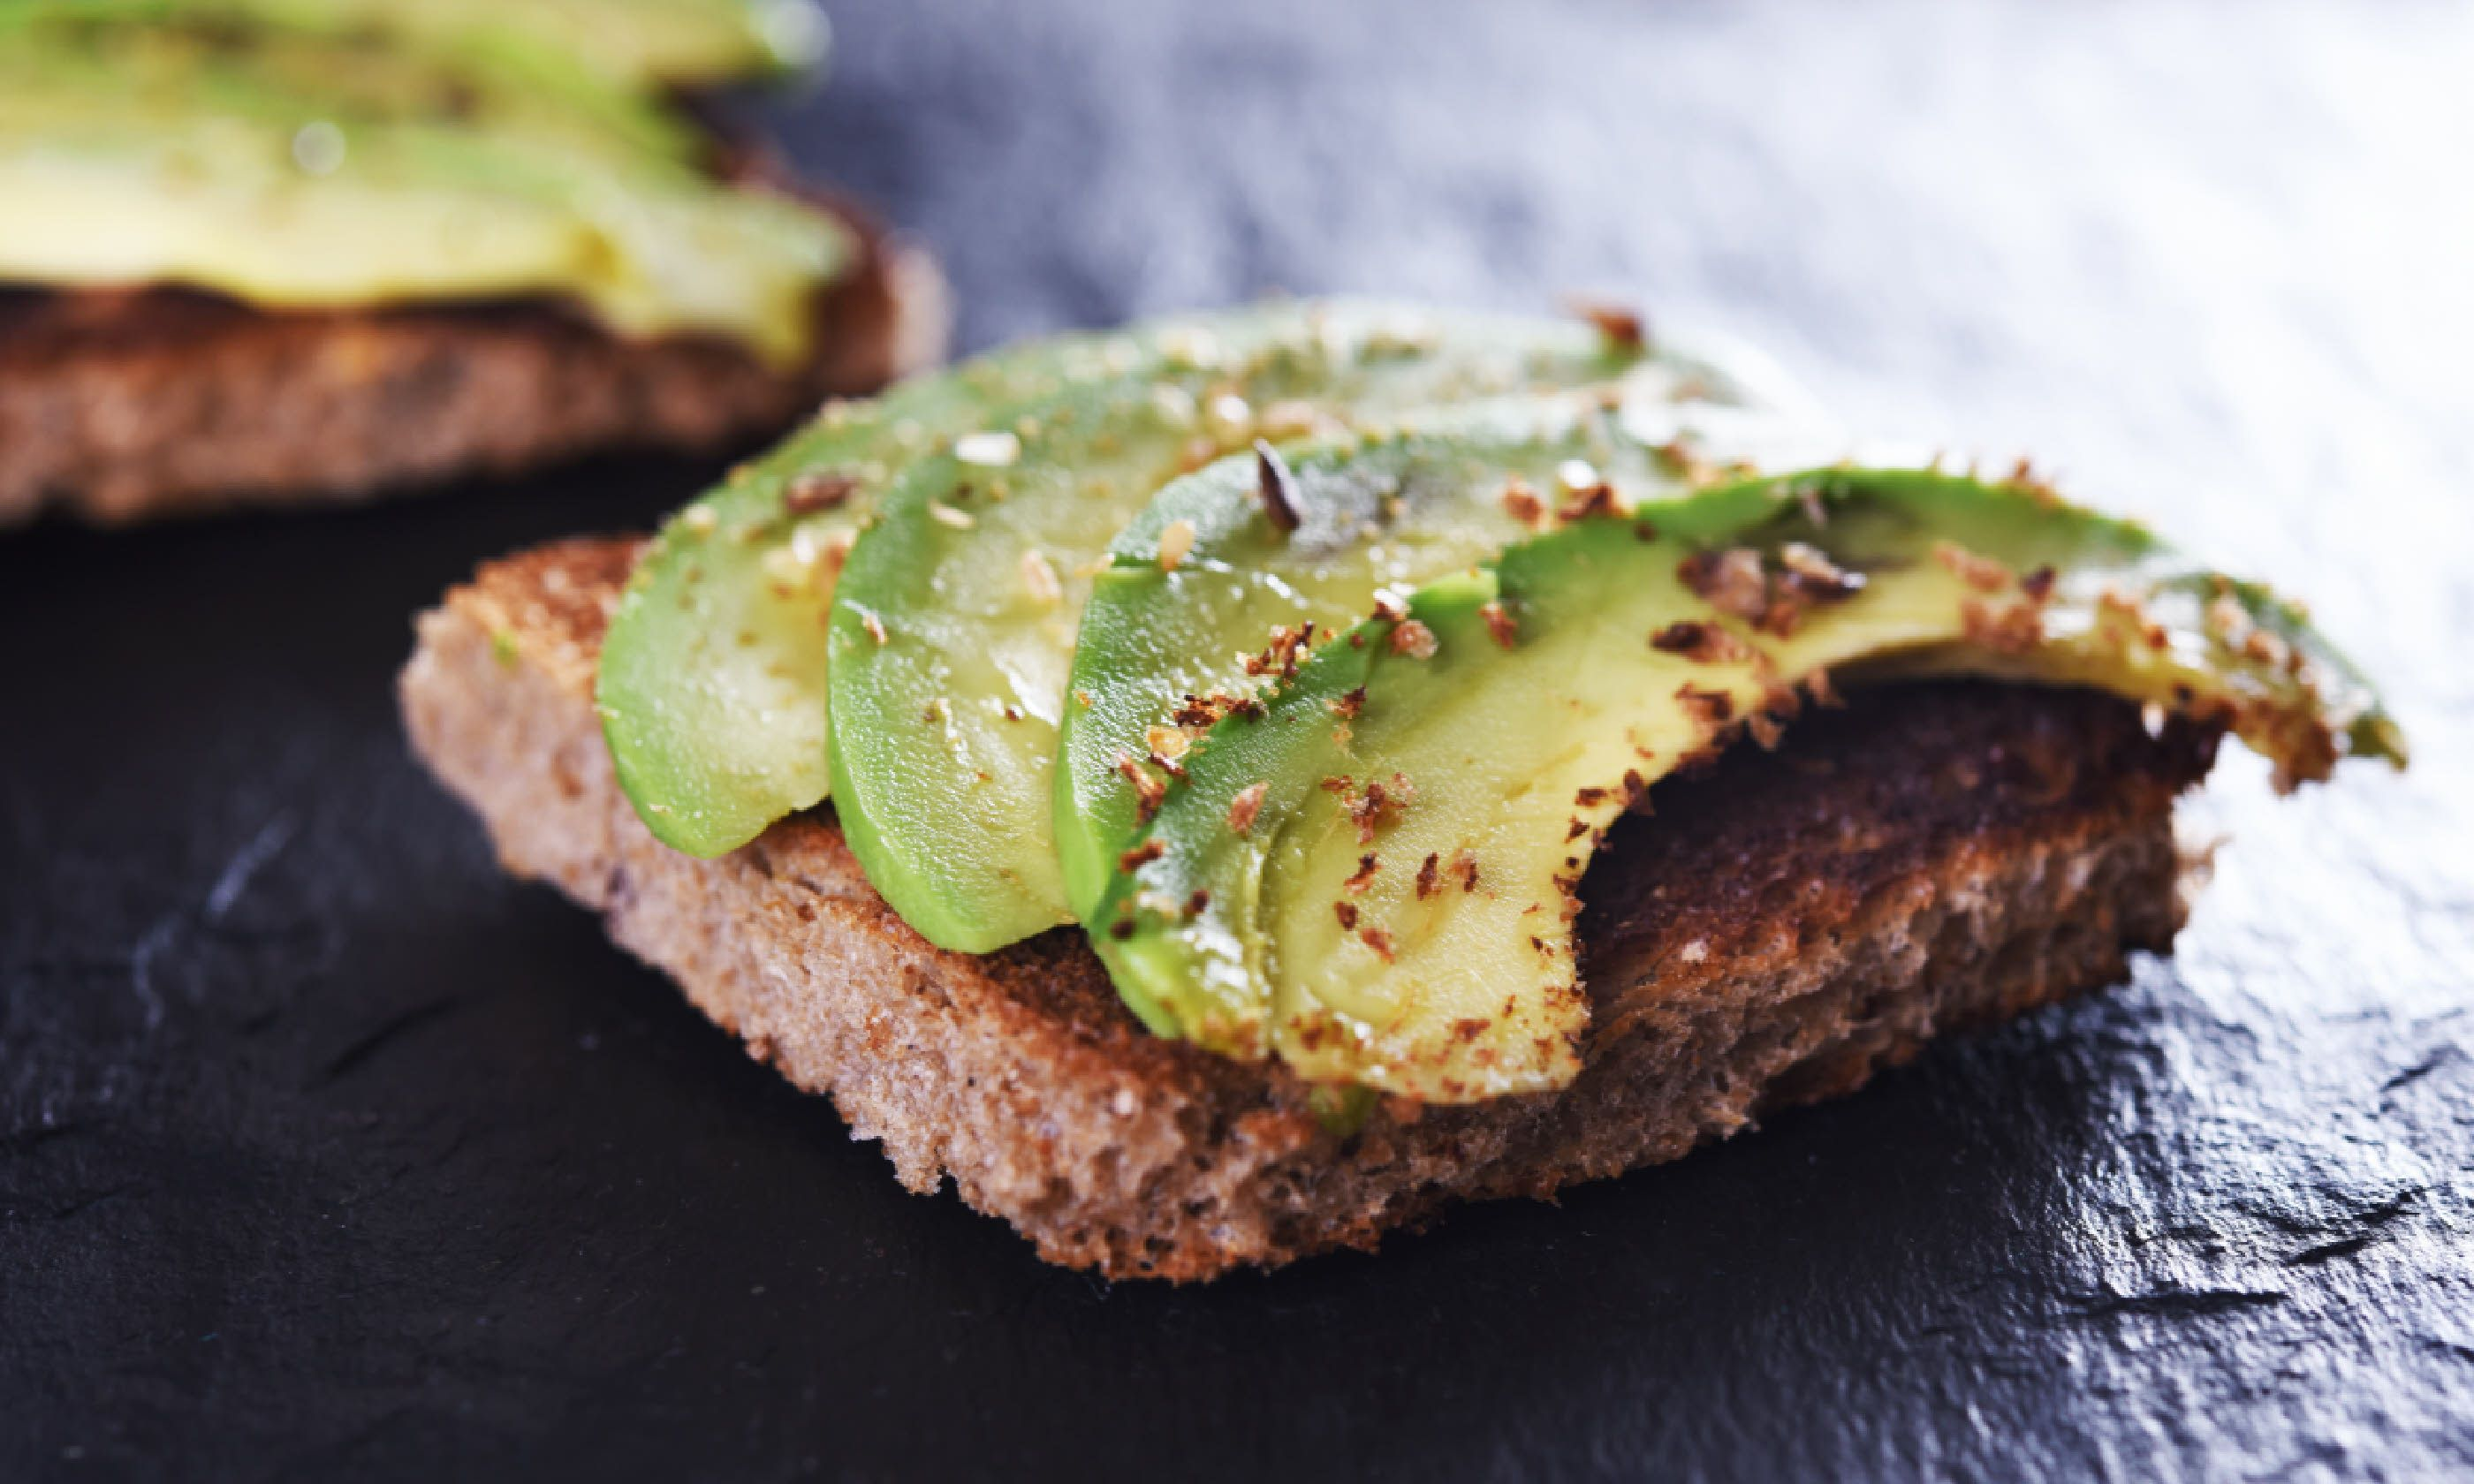 Sliced avocado on toast (Shutterstock)